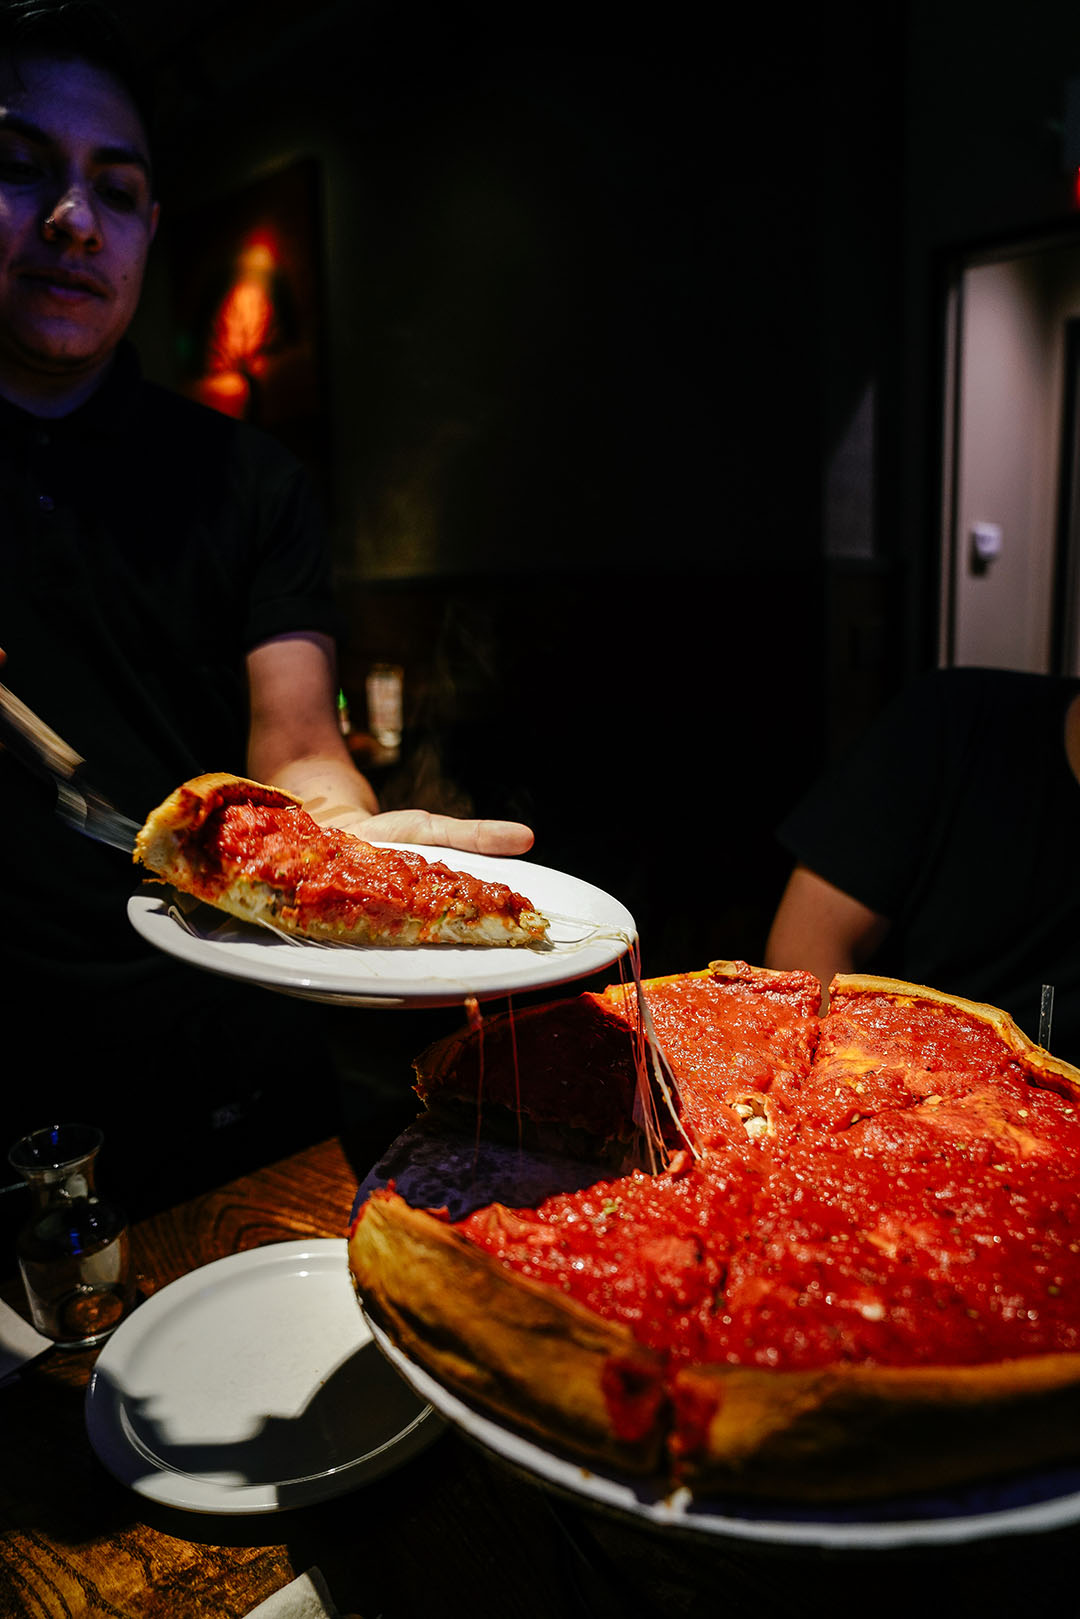 Deep Dish Pizza at  Patxi's Pizza  (This is not Chicago btw)